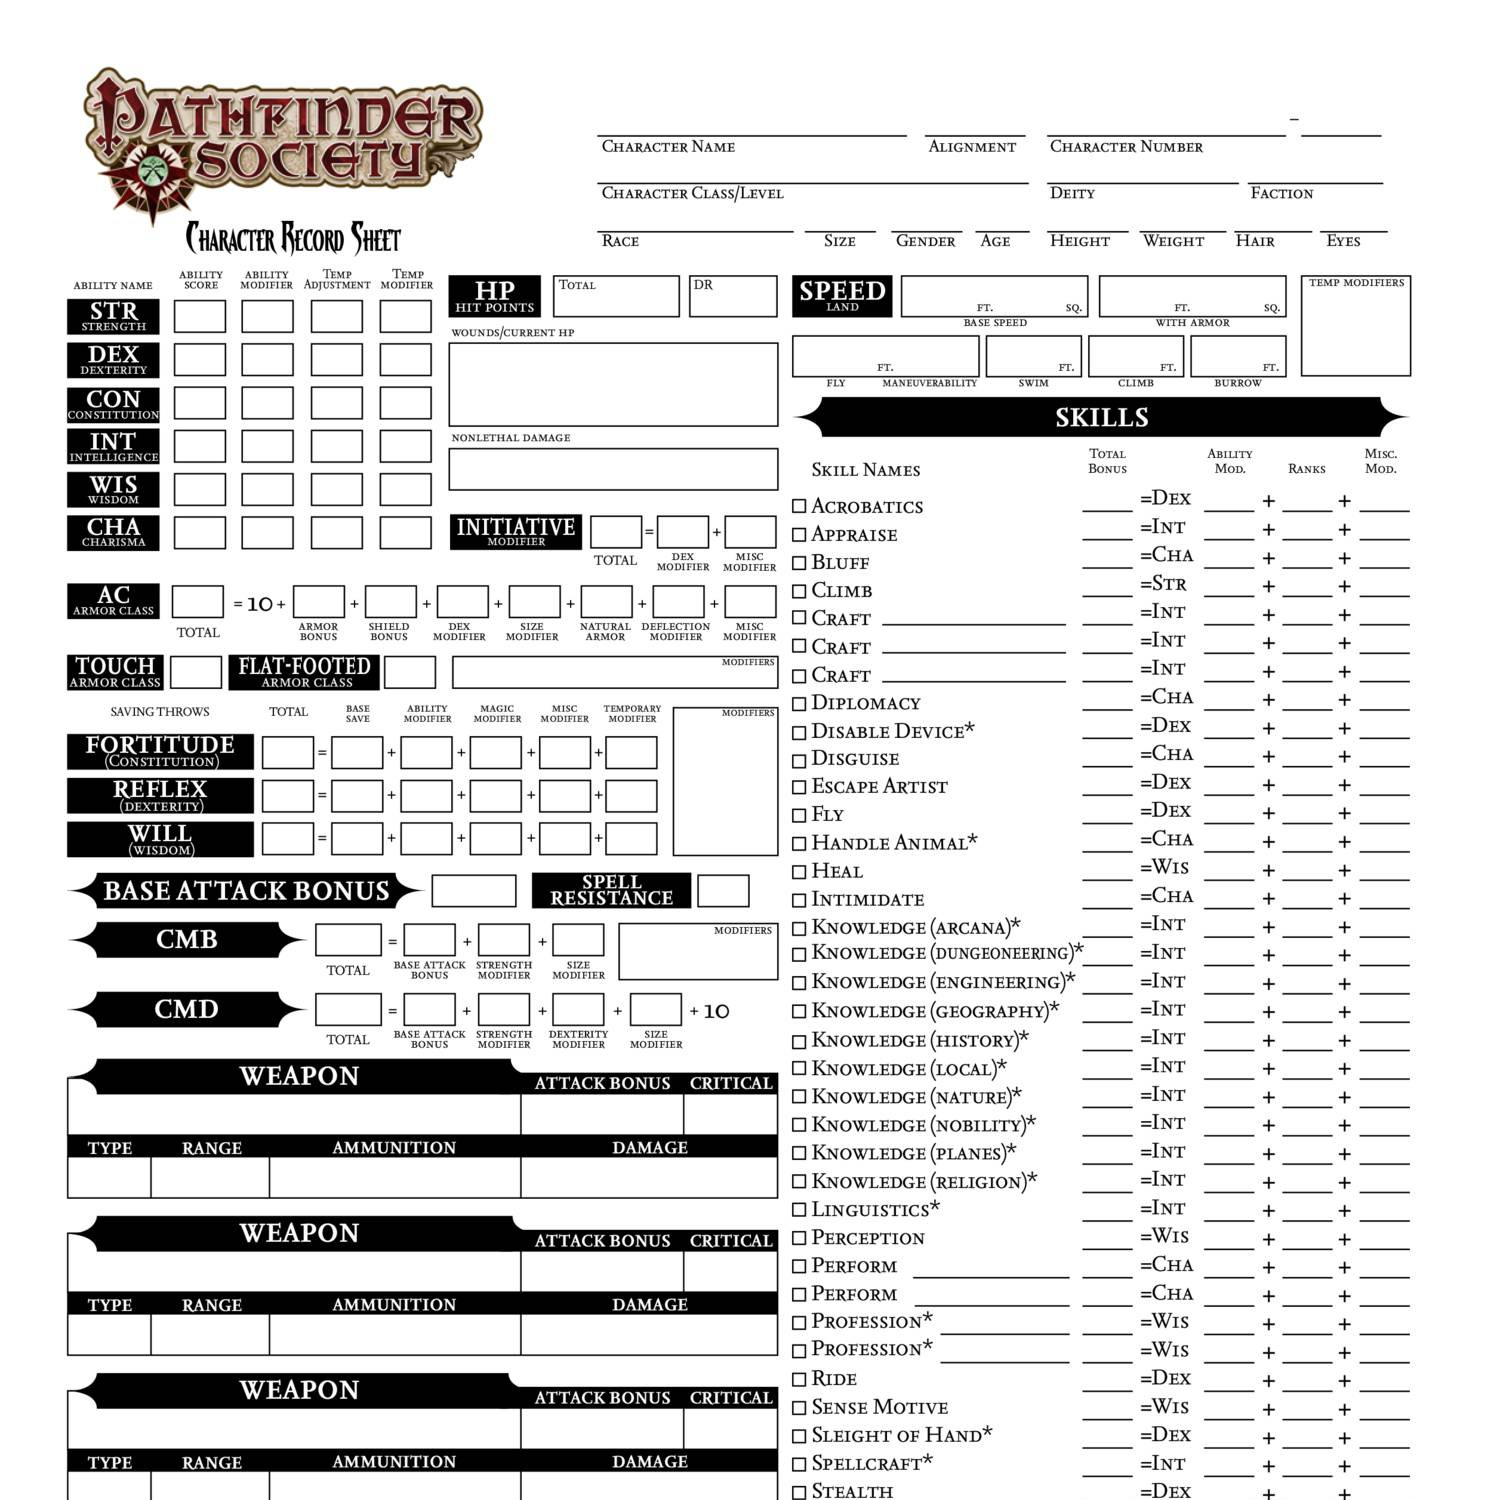 image about Pathfinder Character Sheet Printable titled Persona Sheet.pdf DocDroid